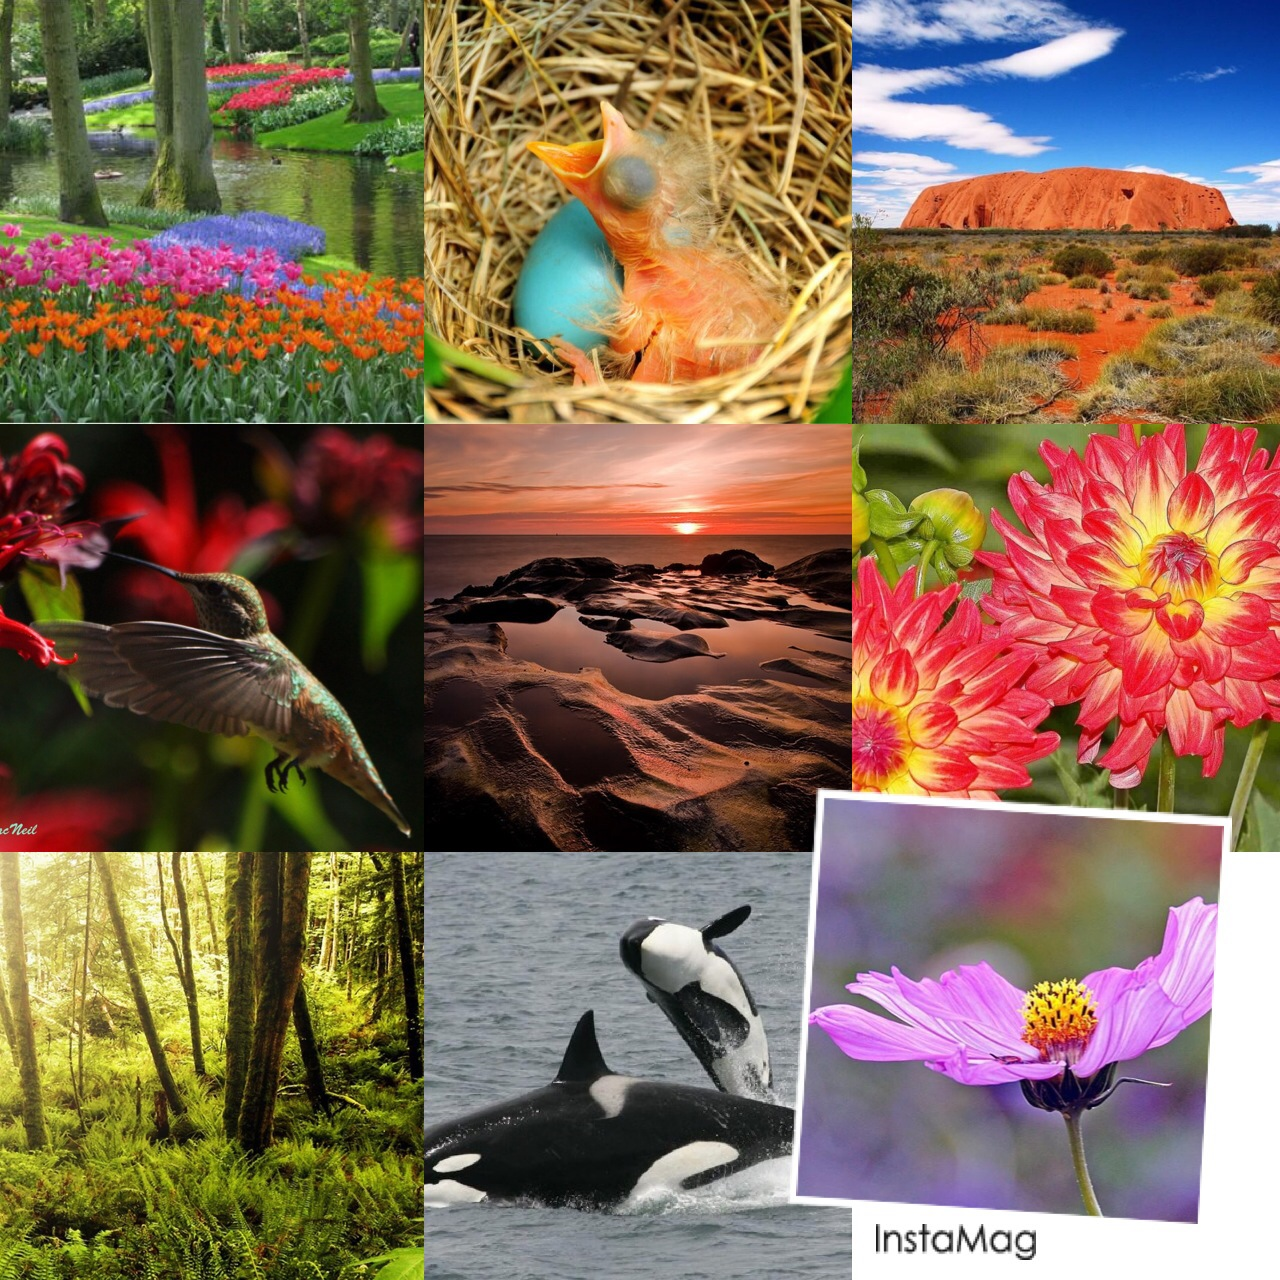 NATURE COLLAGE TO BE AMAZED ABOUT